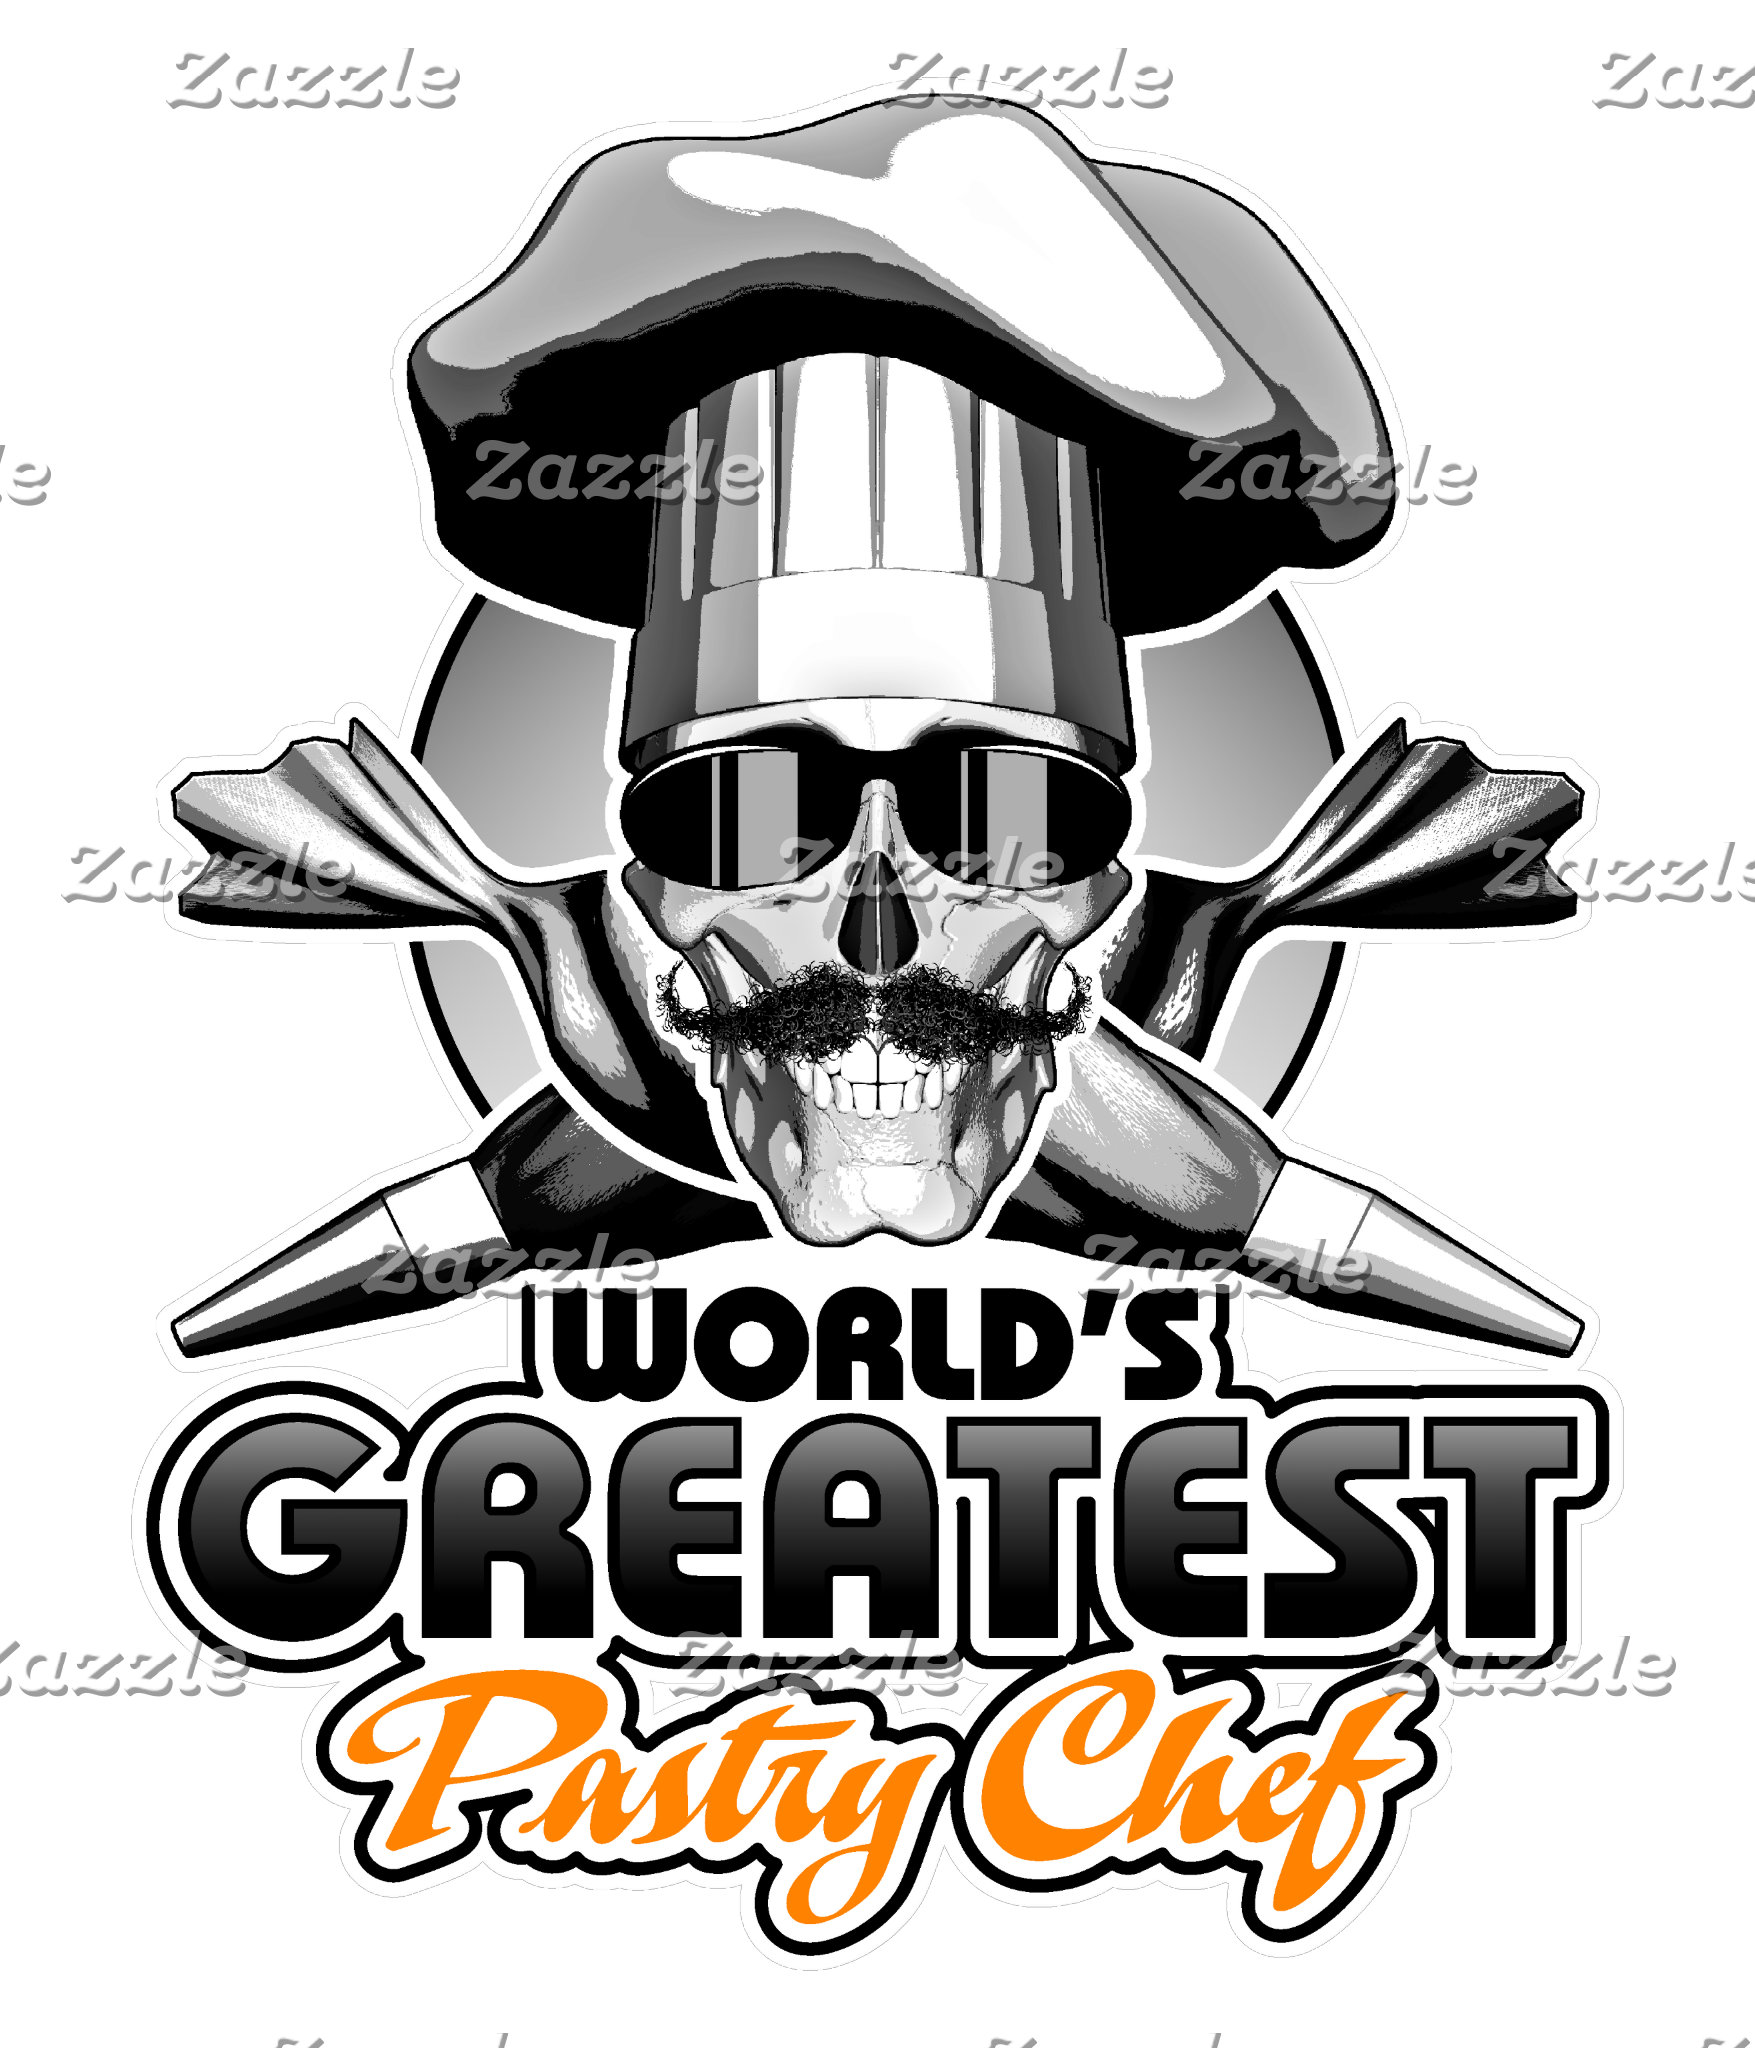 World's Greatest Pastry Chef v4